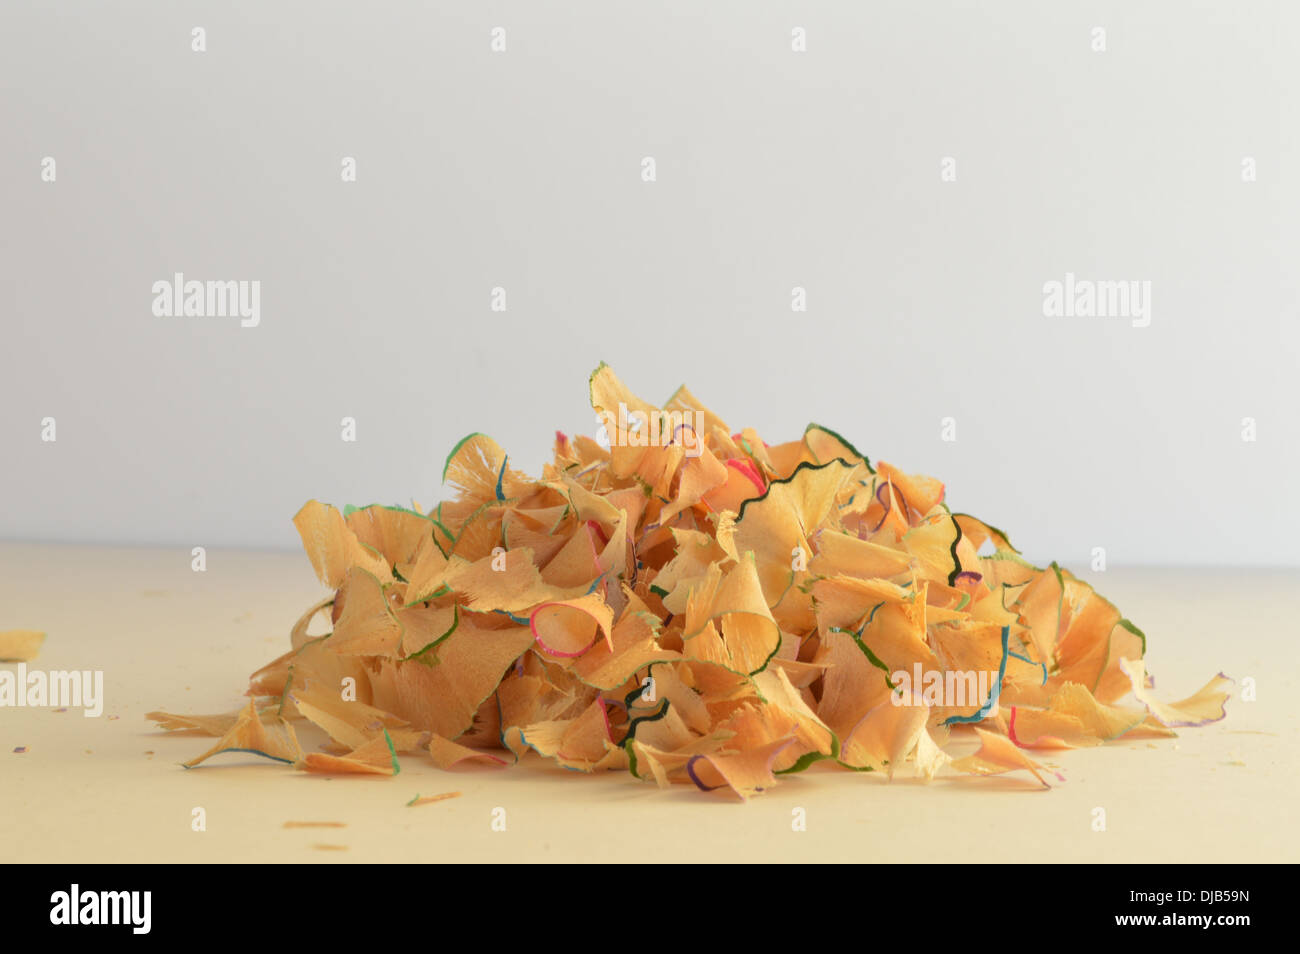 Pile of coloured pencil shavings, pile of coloured pencil sharpenings - Stock Image